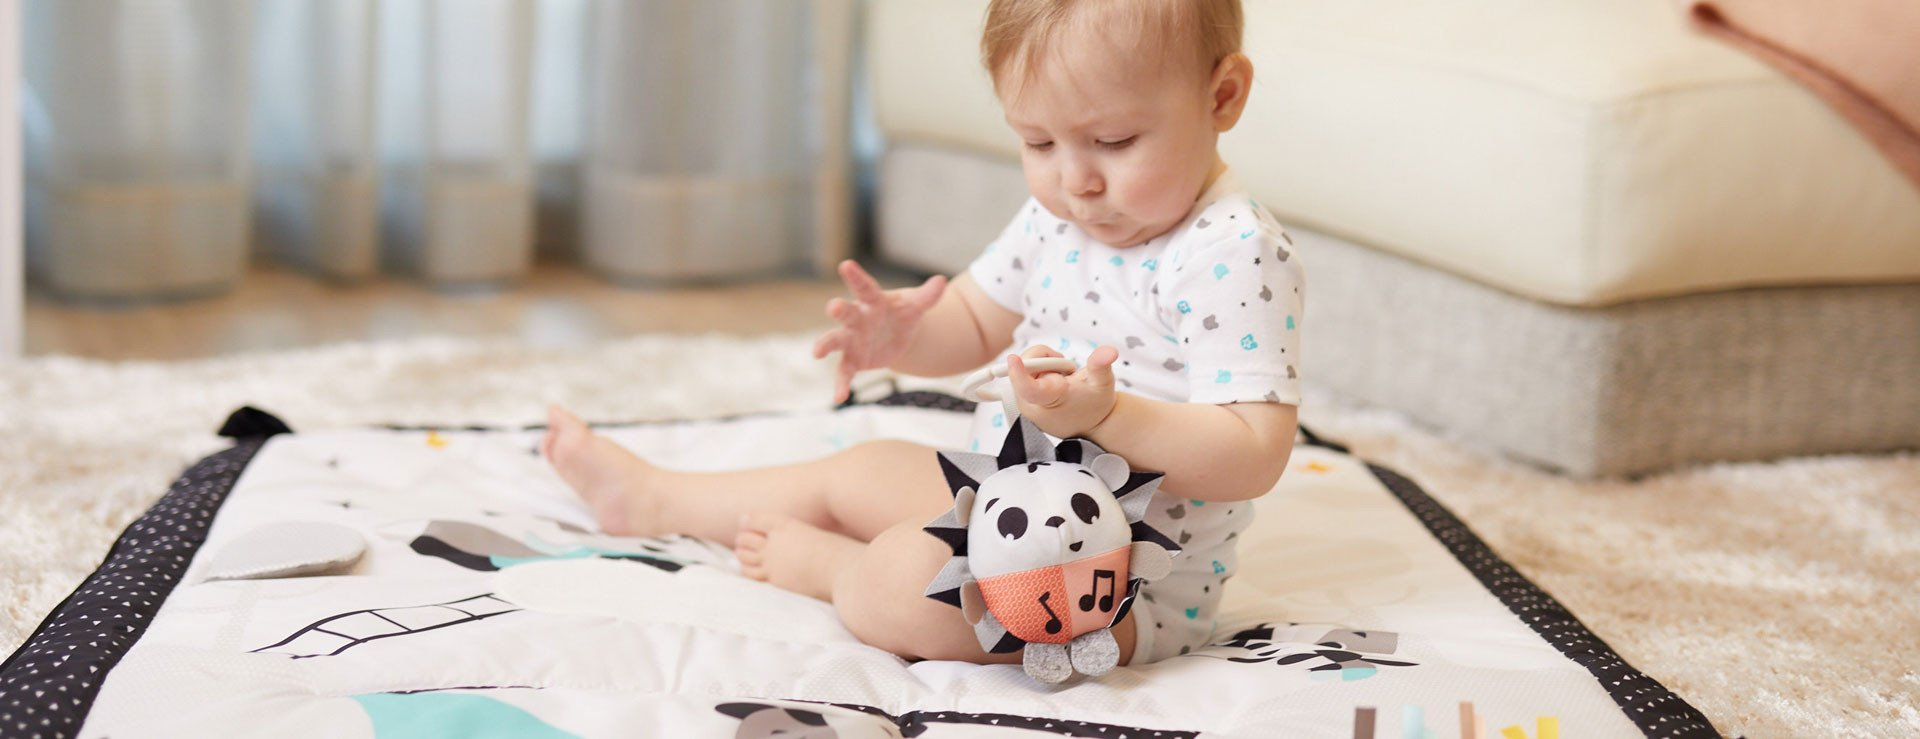 Musical toy responds to tapping, teaching baby about cause & effect